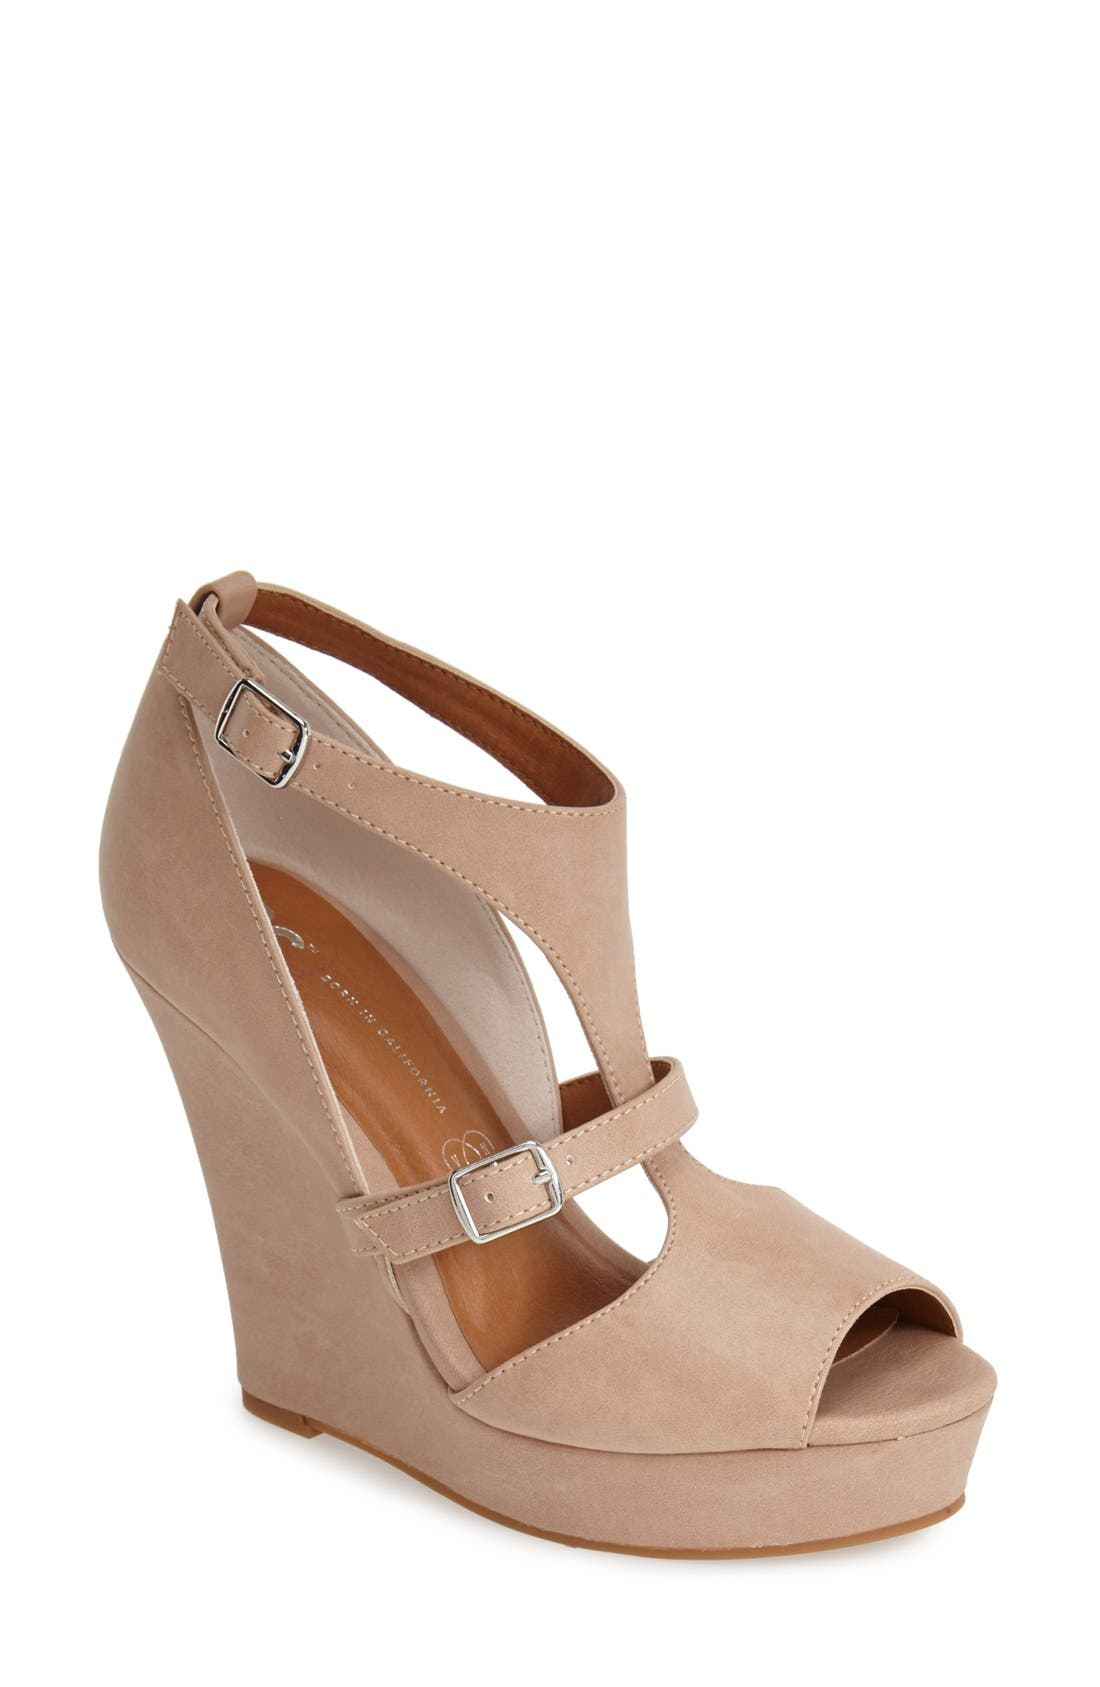 Alternate Image 1 Selected - BC Footwear 'Lionness' Faux Leather Wedge Sandal (Women)